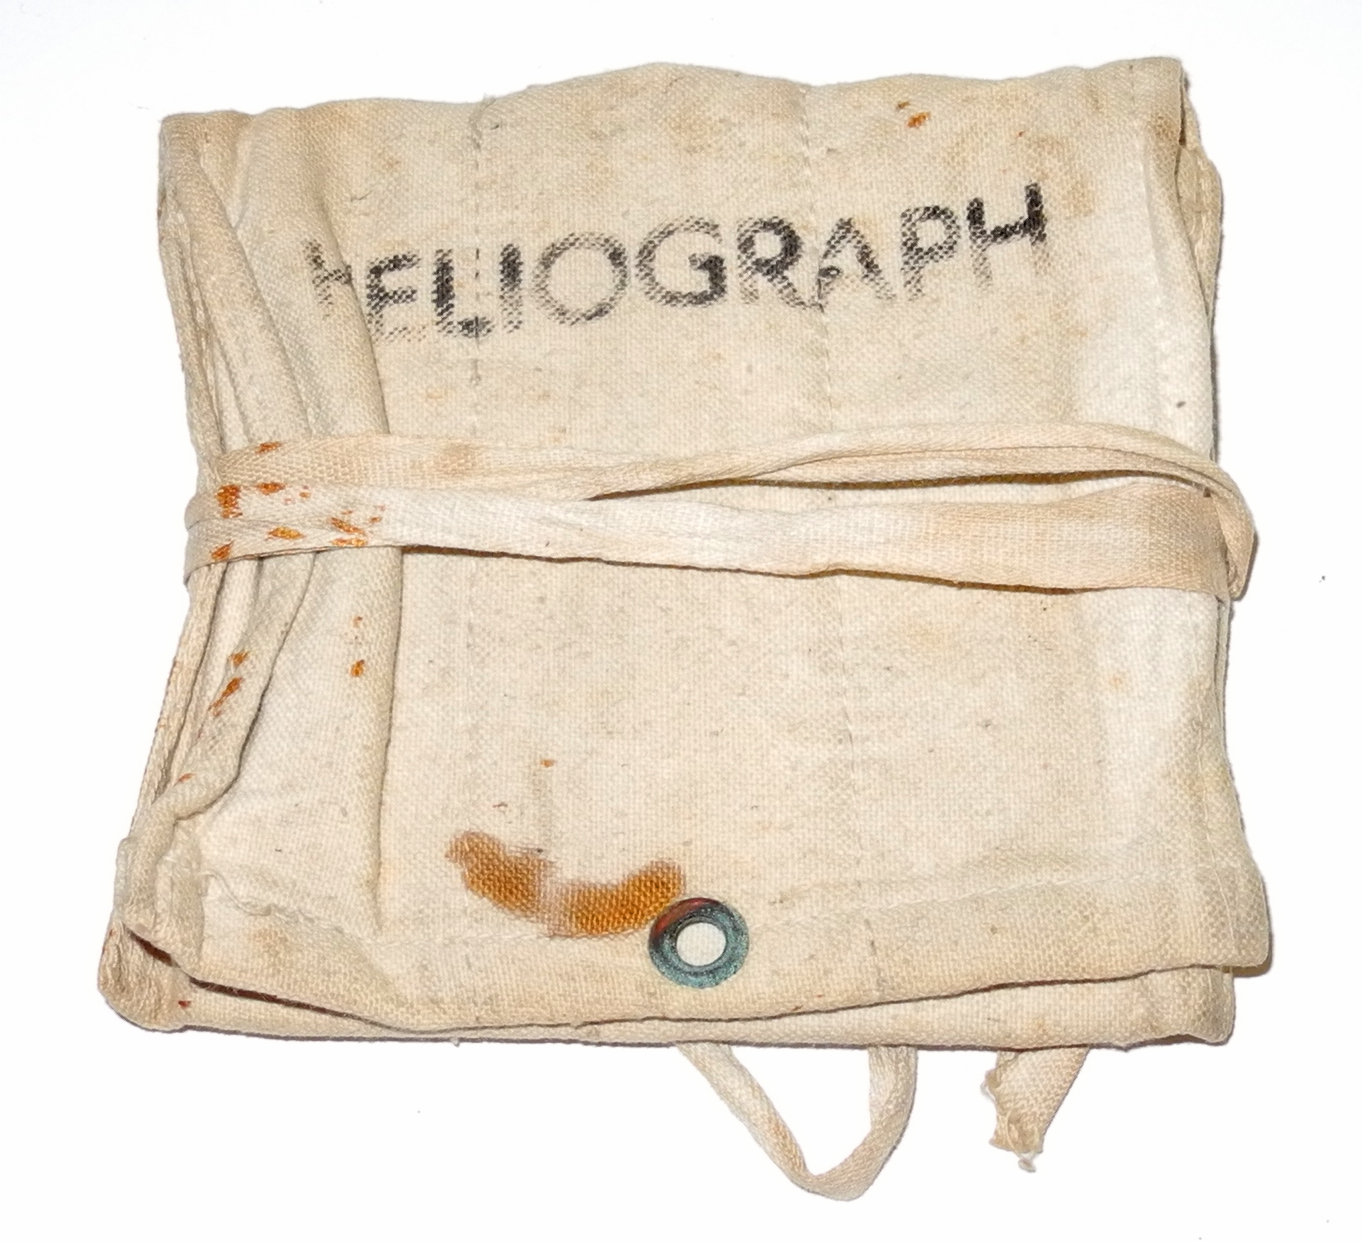 RAF large size heliograph for dinghy